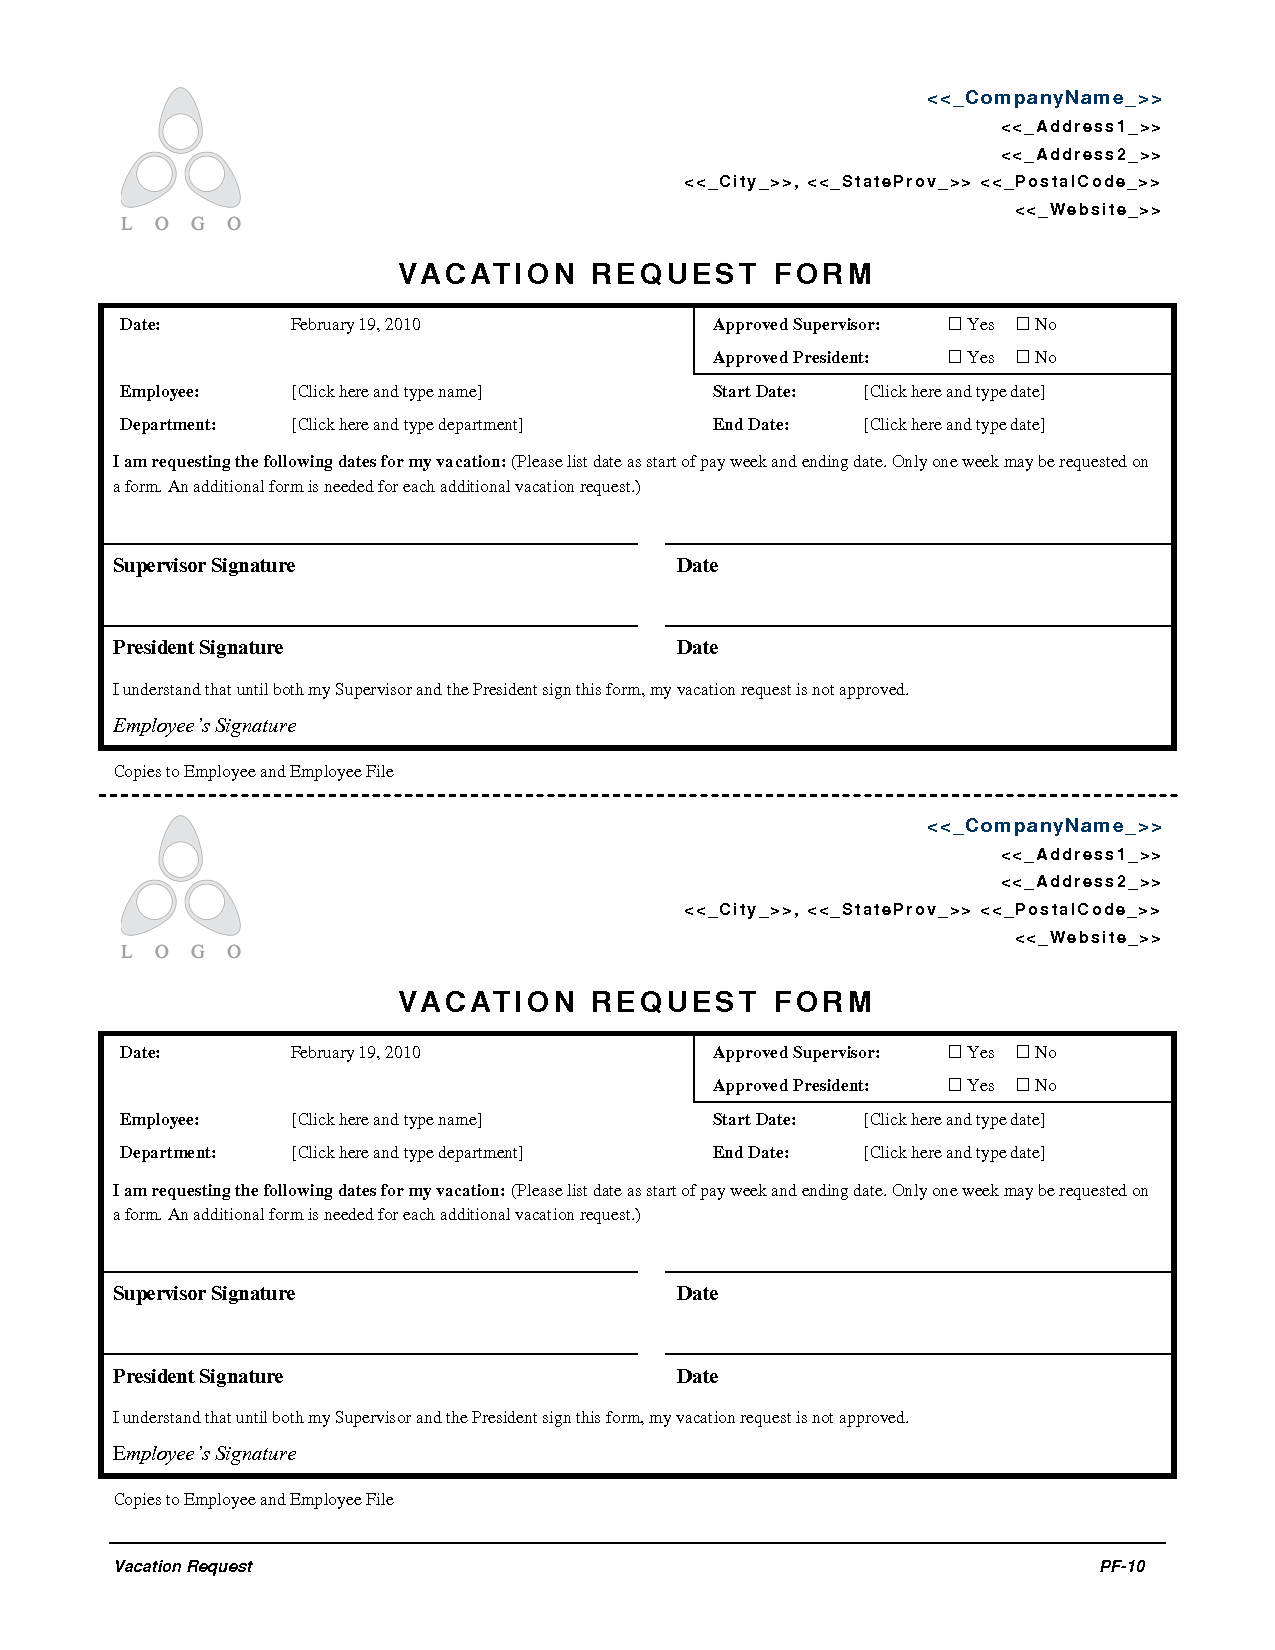 2010 employee vacation request form employee forms pinterest 2010 employee vacation request form yelopaper Choice Image